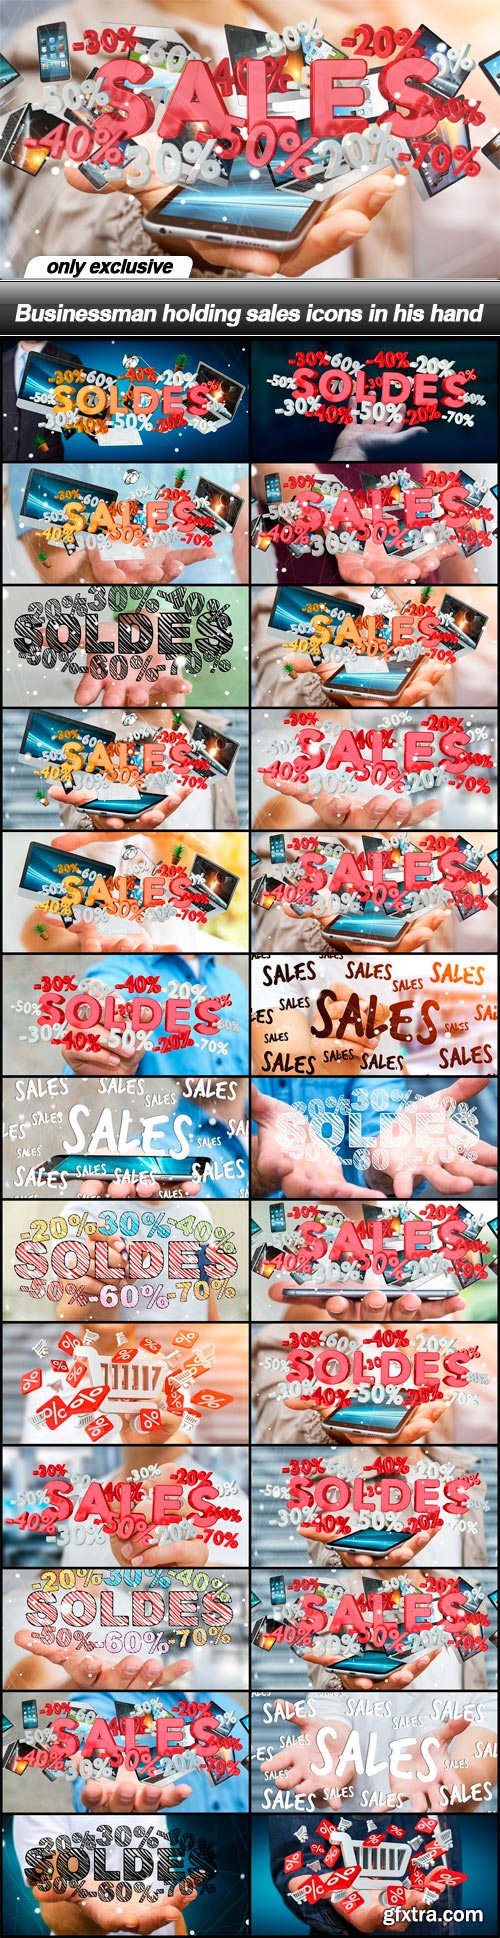 Businessman holding sales icons in his hand - 26 UHQ JPEG